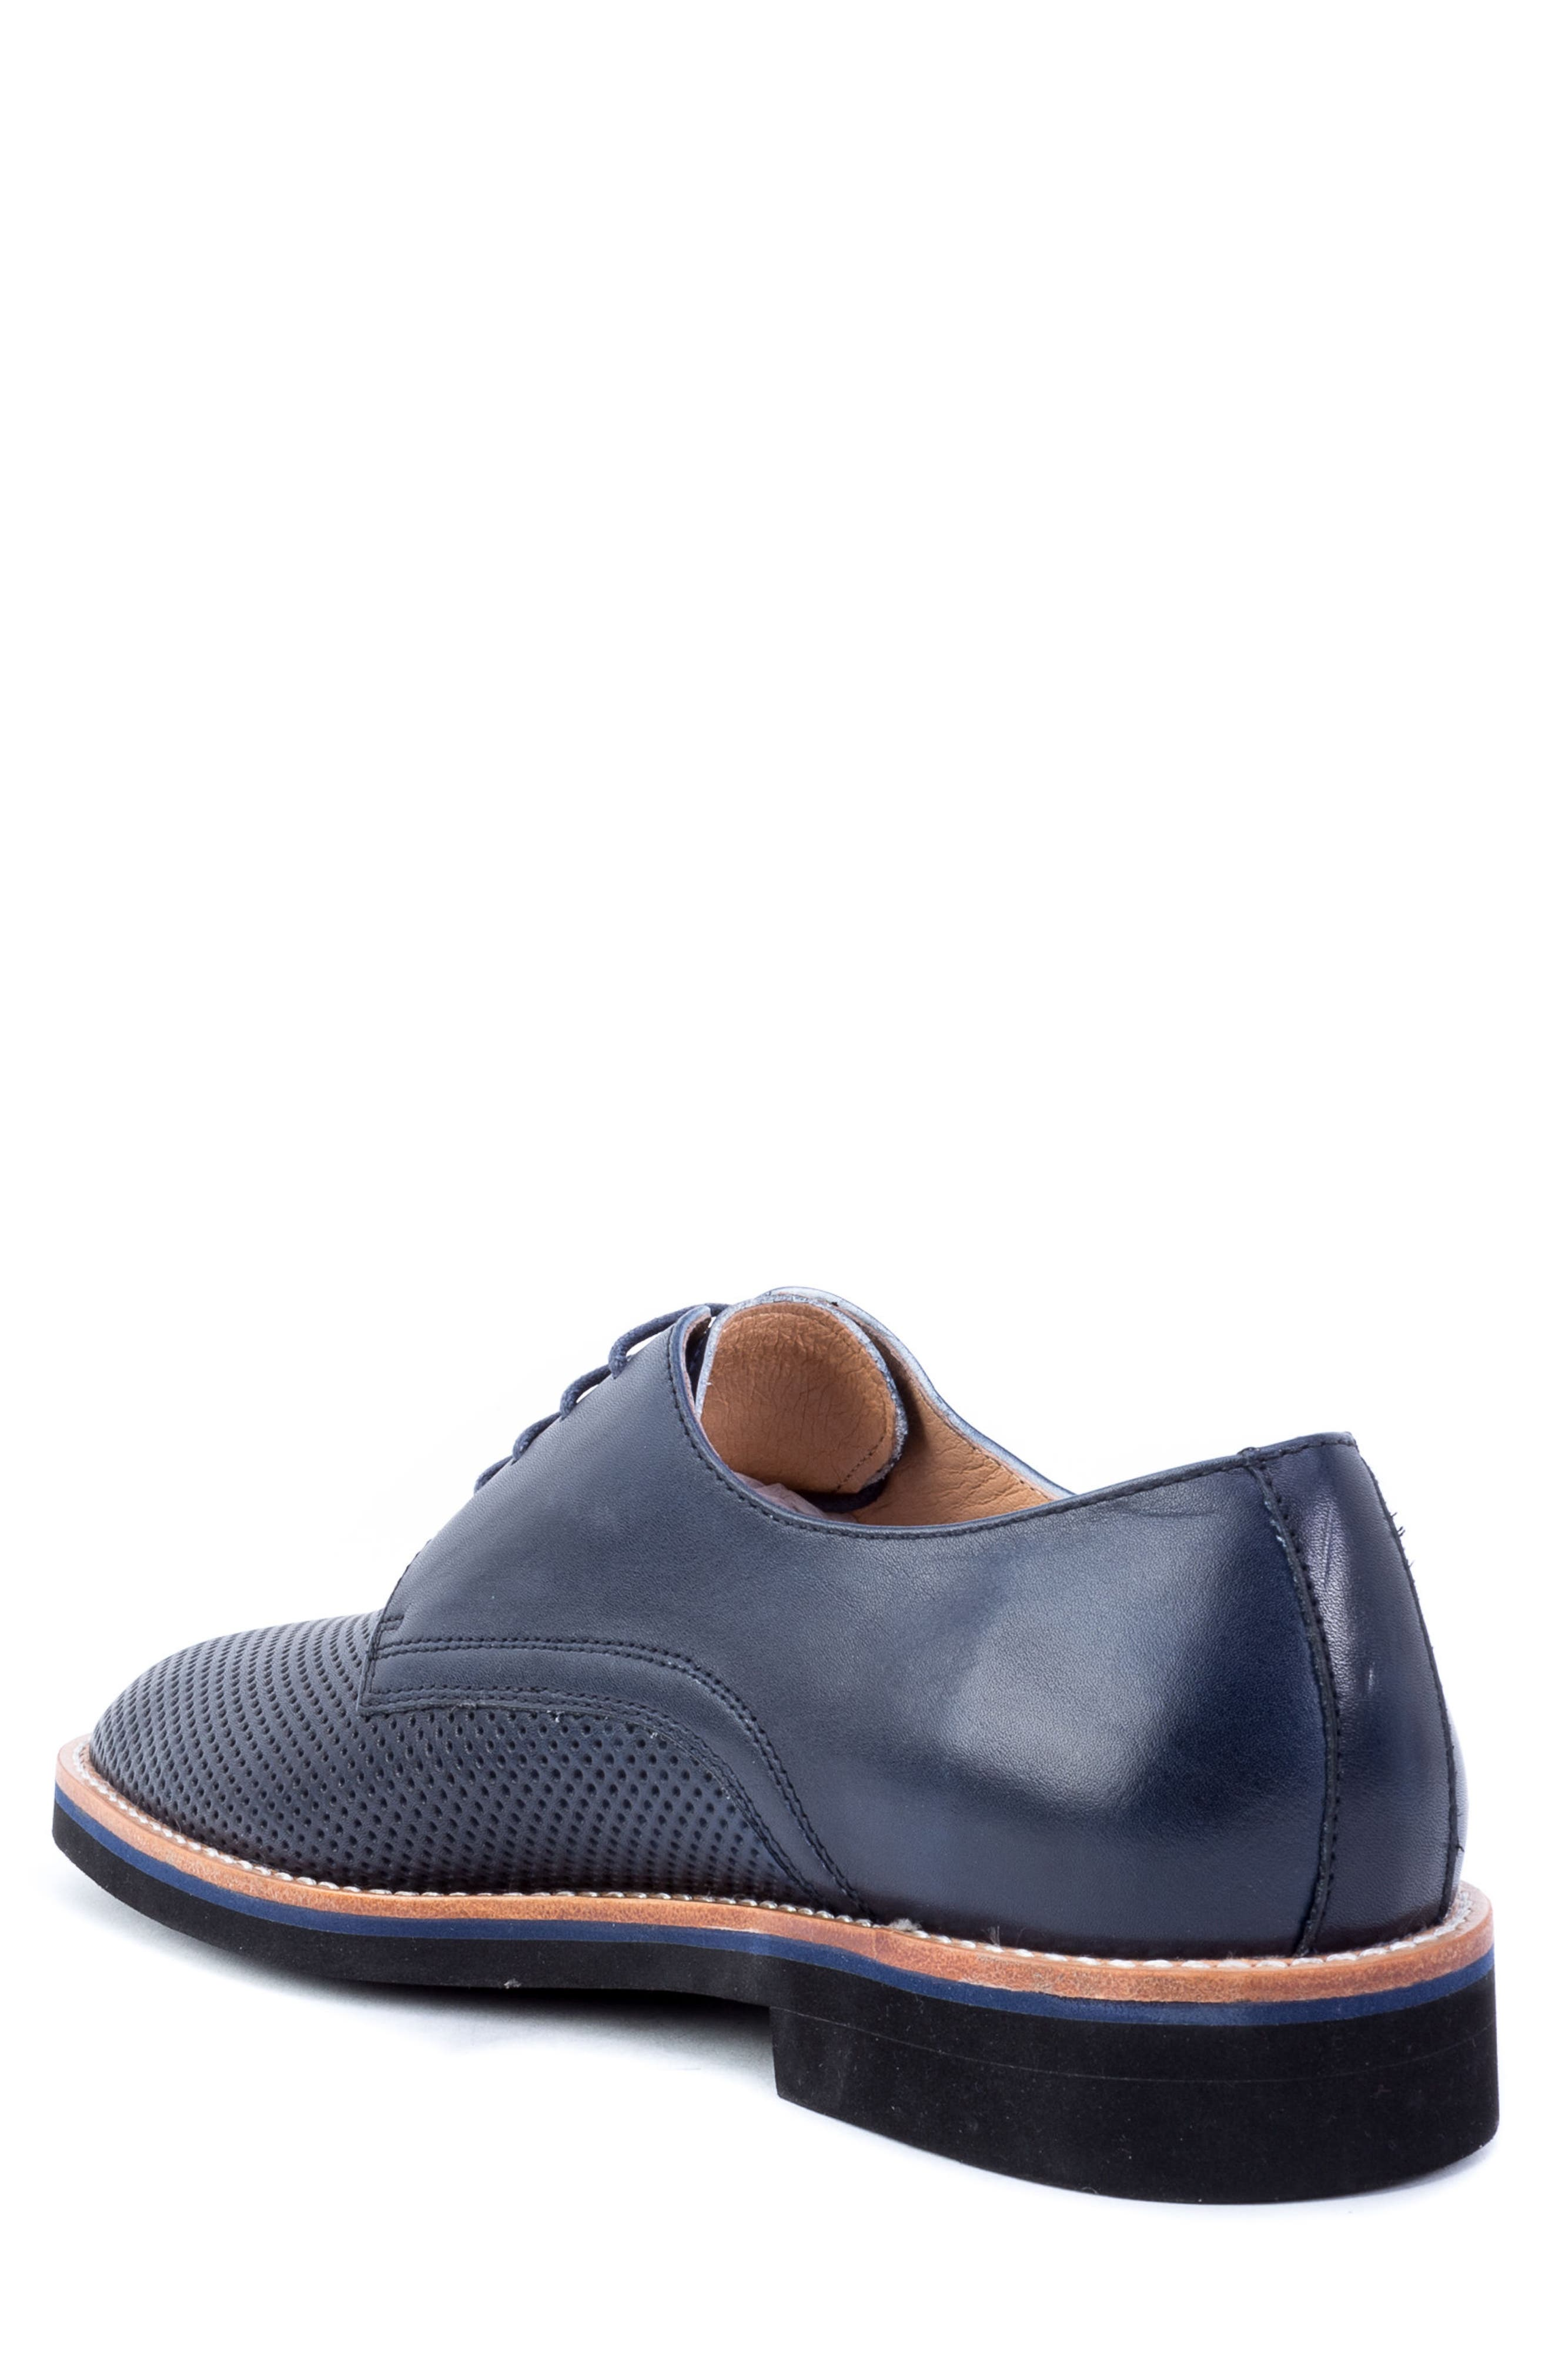 Hartung Perforated Plain Toe Derby,                             Alternate thumbnail 2, color,                             NAVY LEATHER